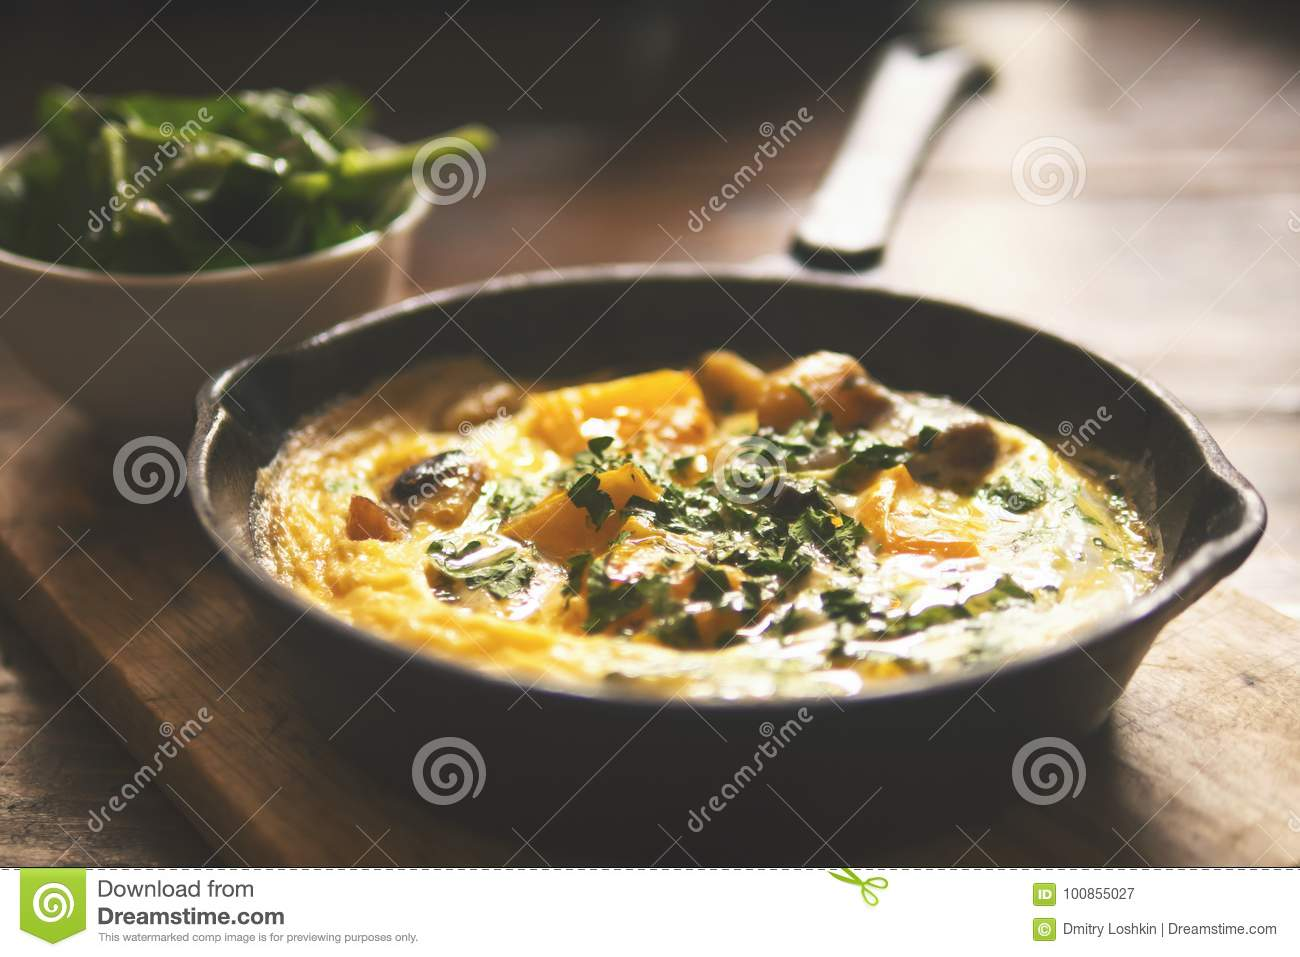 Omelette with Vegetables in Old Vintage Iron Frying Pan on Wooden Table. Autumn Vegetarian Breakfast.